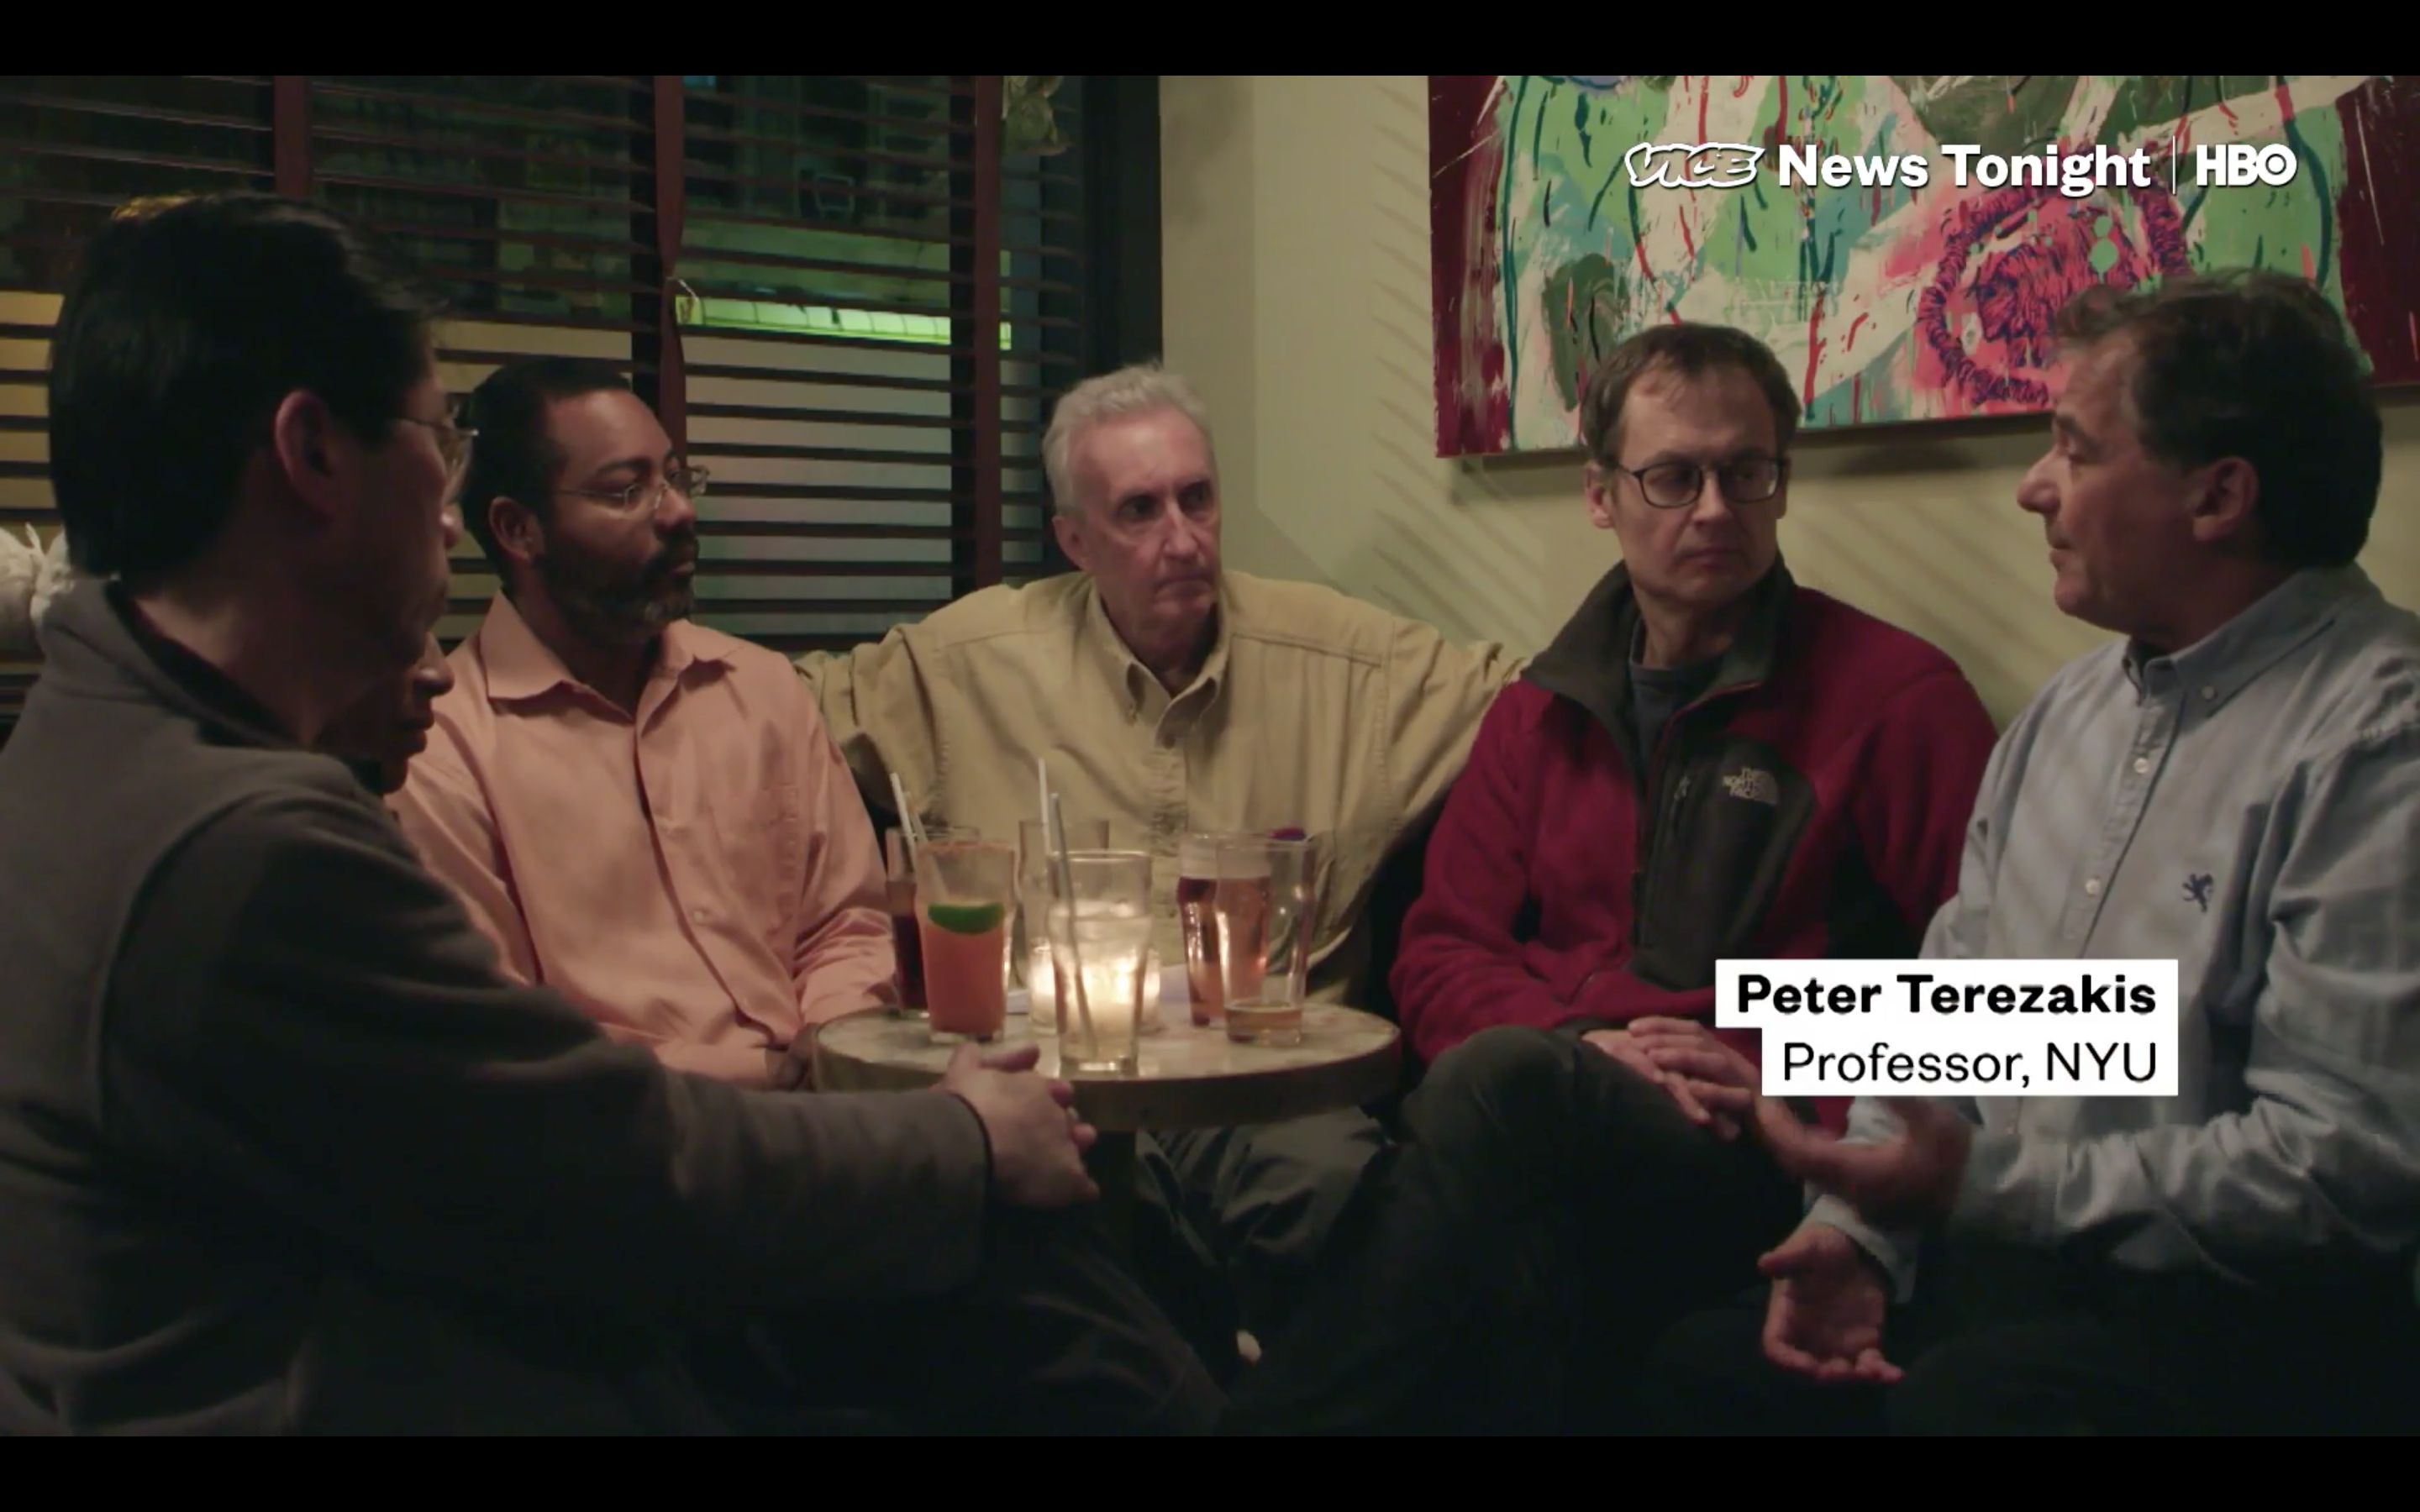 A PHoto of Prof. Peter Terezakis on Vice News